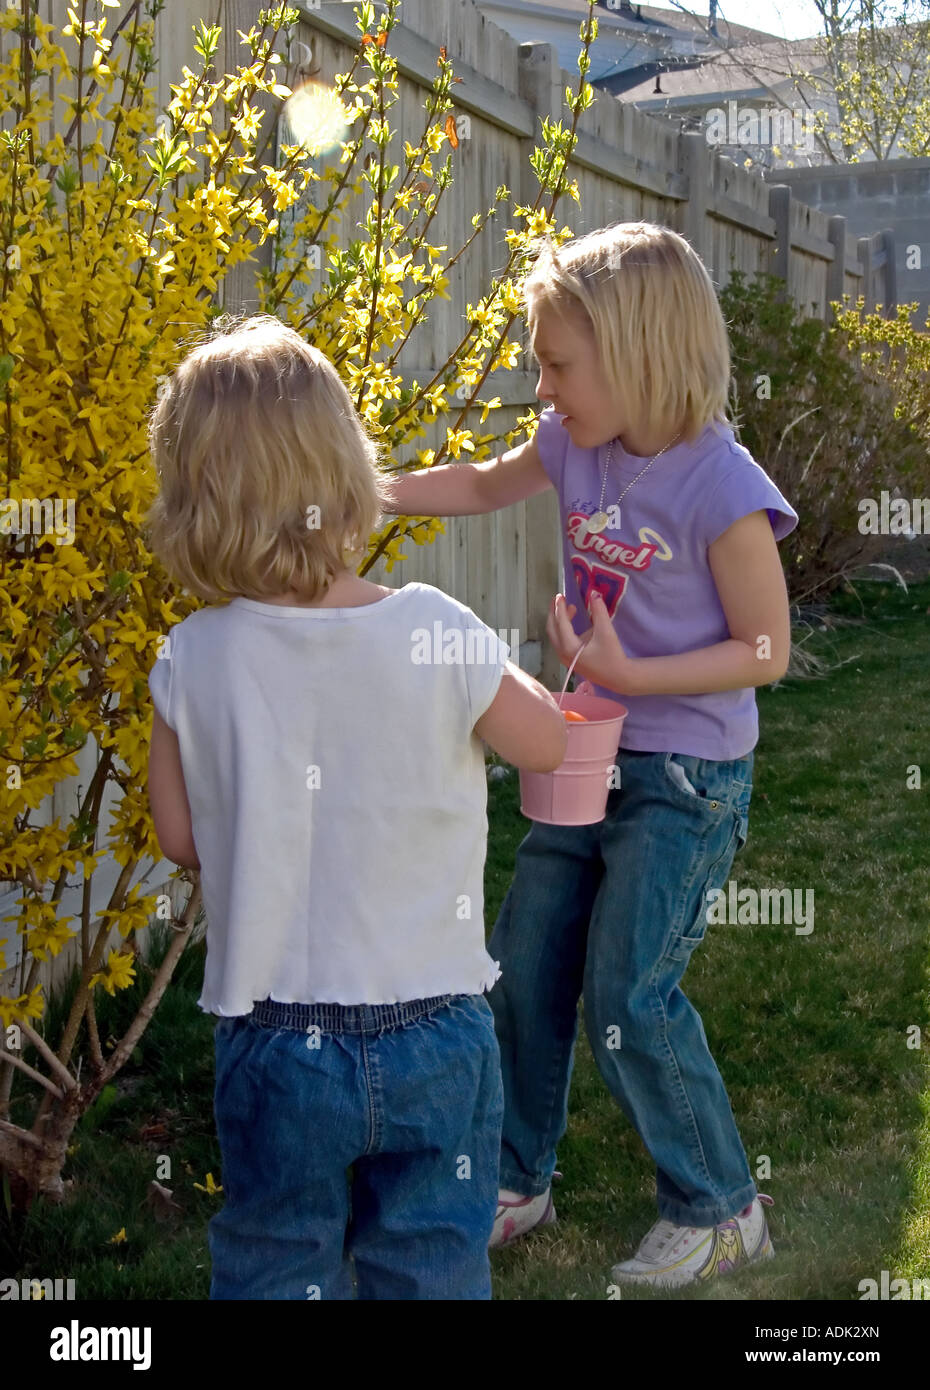 Young girls have found more treasures on their search for more Easter eggs in a backyard Easter egg hunt in Utah, Stock Photo